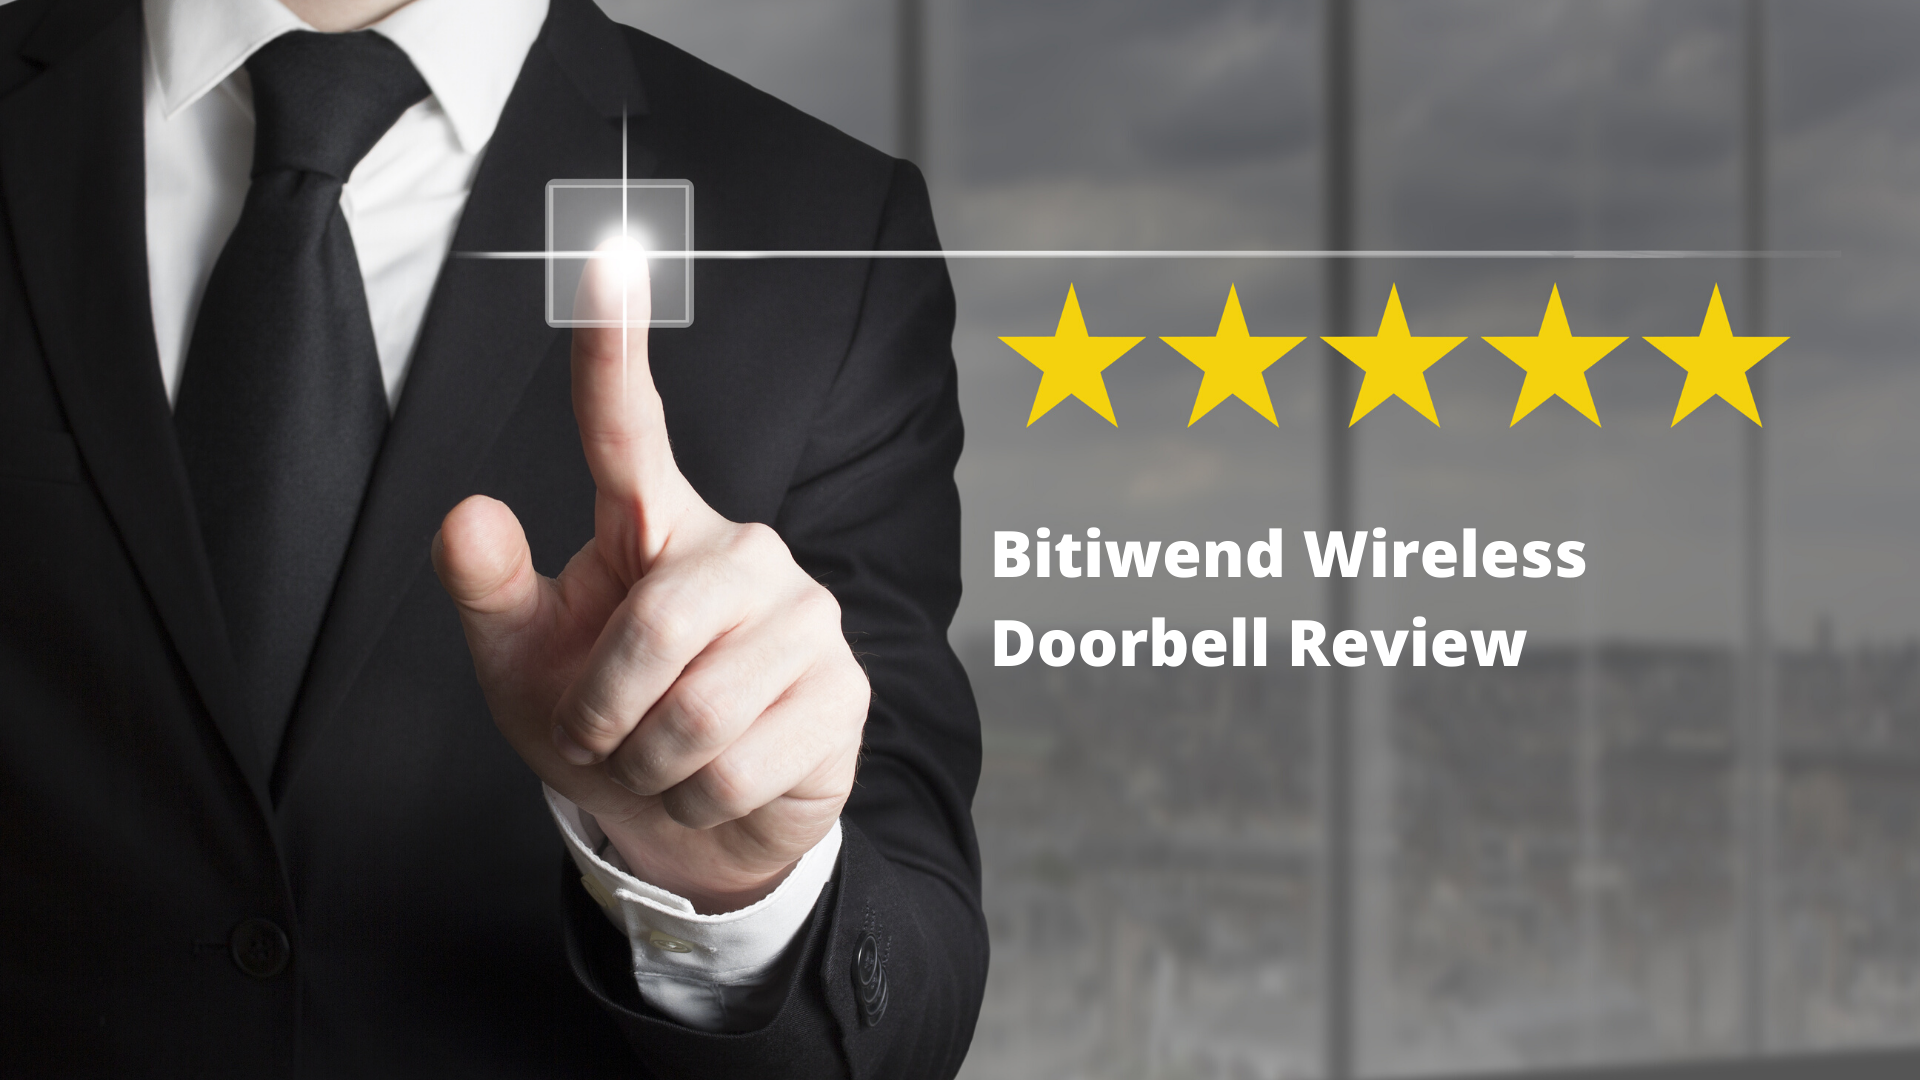 Bitiwend Wireless Doorbell Review